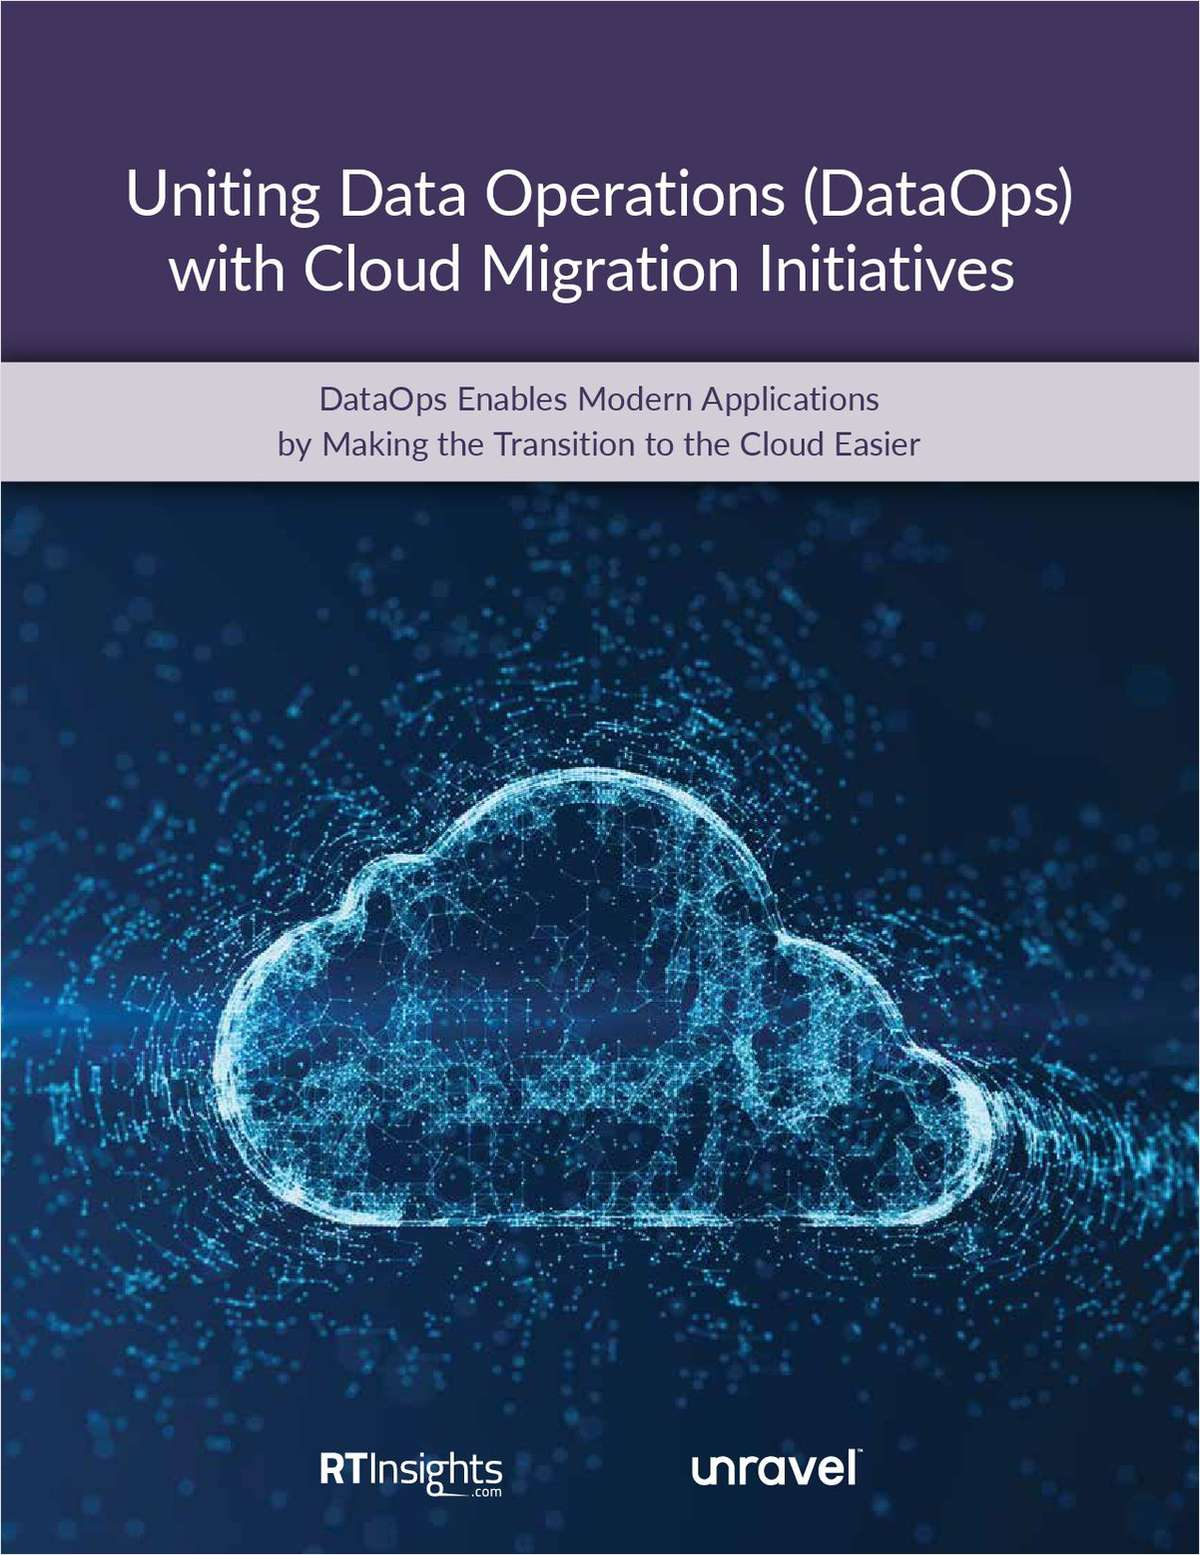 Uniting Data Operations (DataOps) with Cloud Migration Initiatives